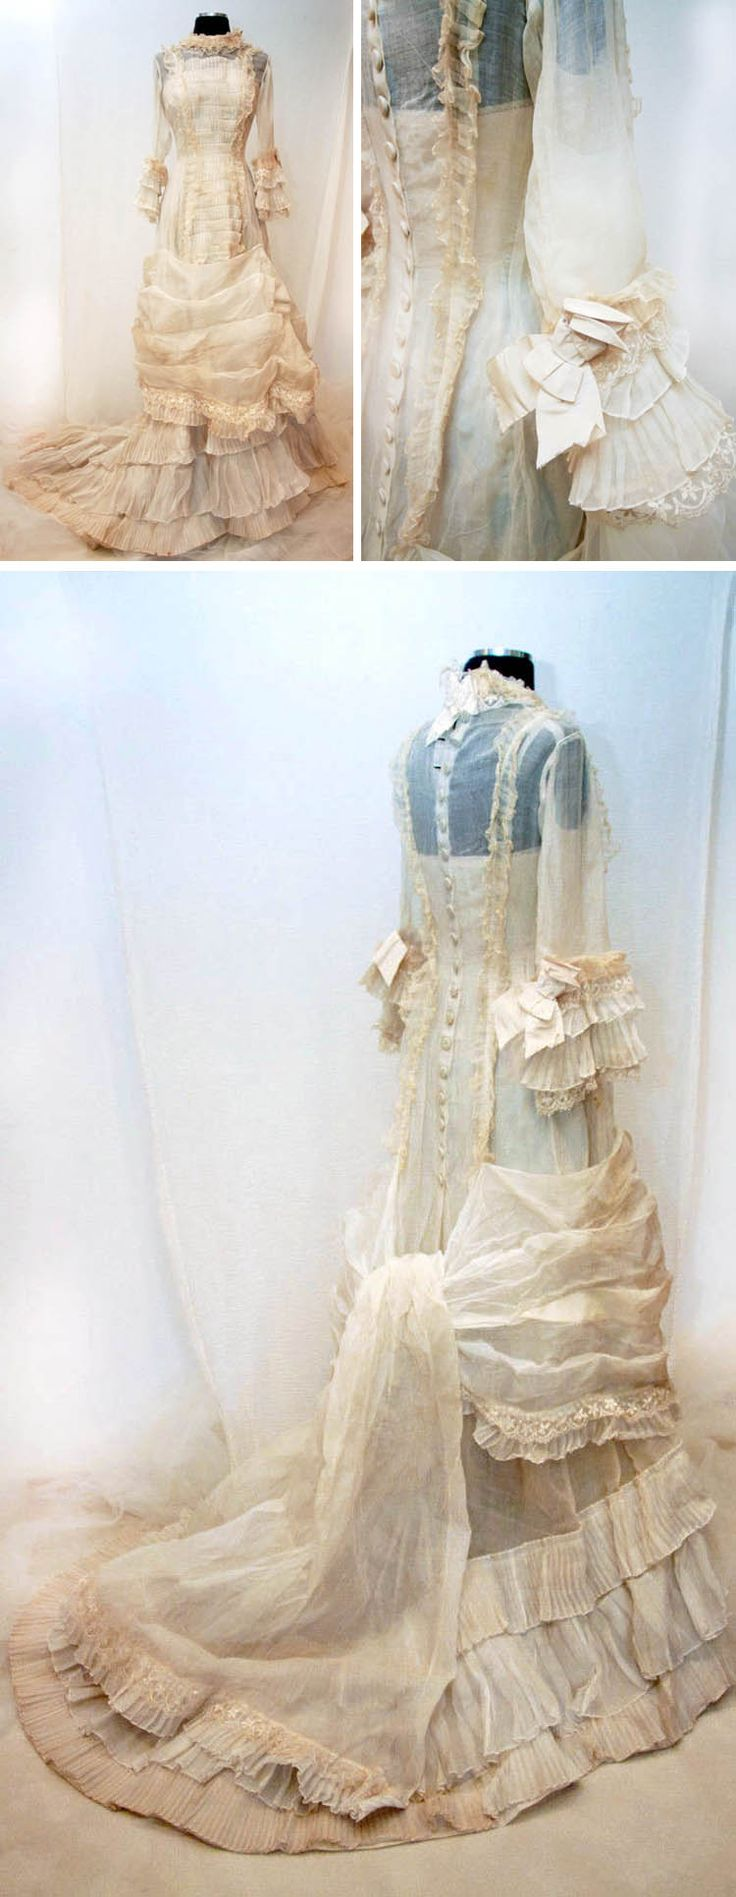 """Wedding gown, late 1870s-early 1880s. Cream-colored organza with lace. """"Natural form"""" dress made of single unseamed panel from shoulder to hem so it lies flat. Long train. Fifteen rows of pleats that face upward and are framed by double-edged row of silk thread-trimmed, loosely woven organza ruffles. Machine- and hand-stitched. Close-fitting sleeves flare out with 2 rows of pleats, finished with tier of handmade silk lace and ivory silk faille ribbon, which is also at neckline"""